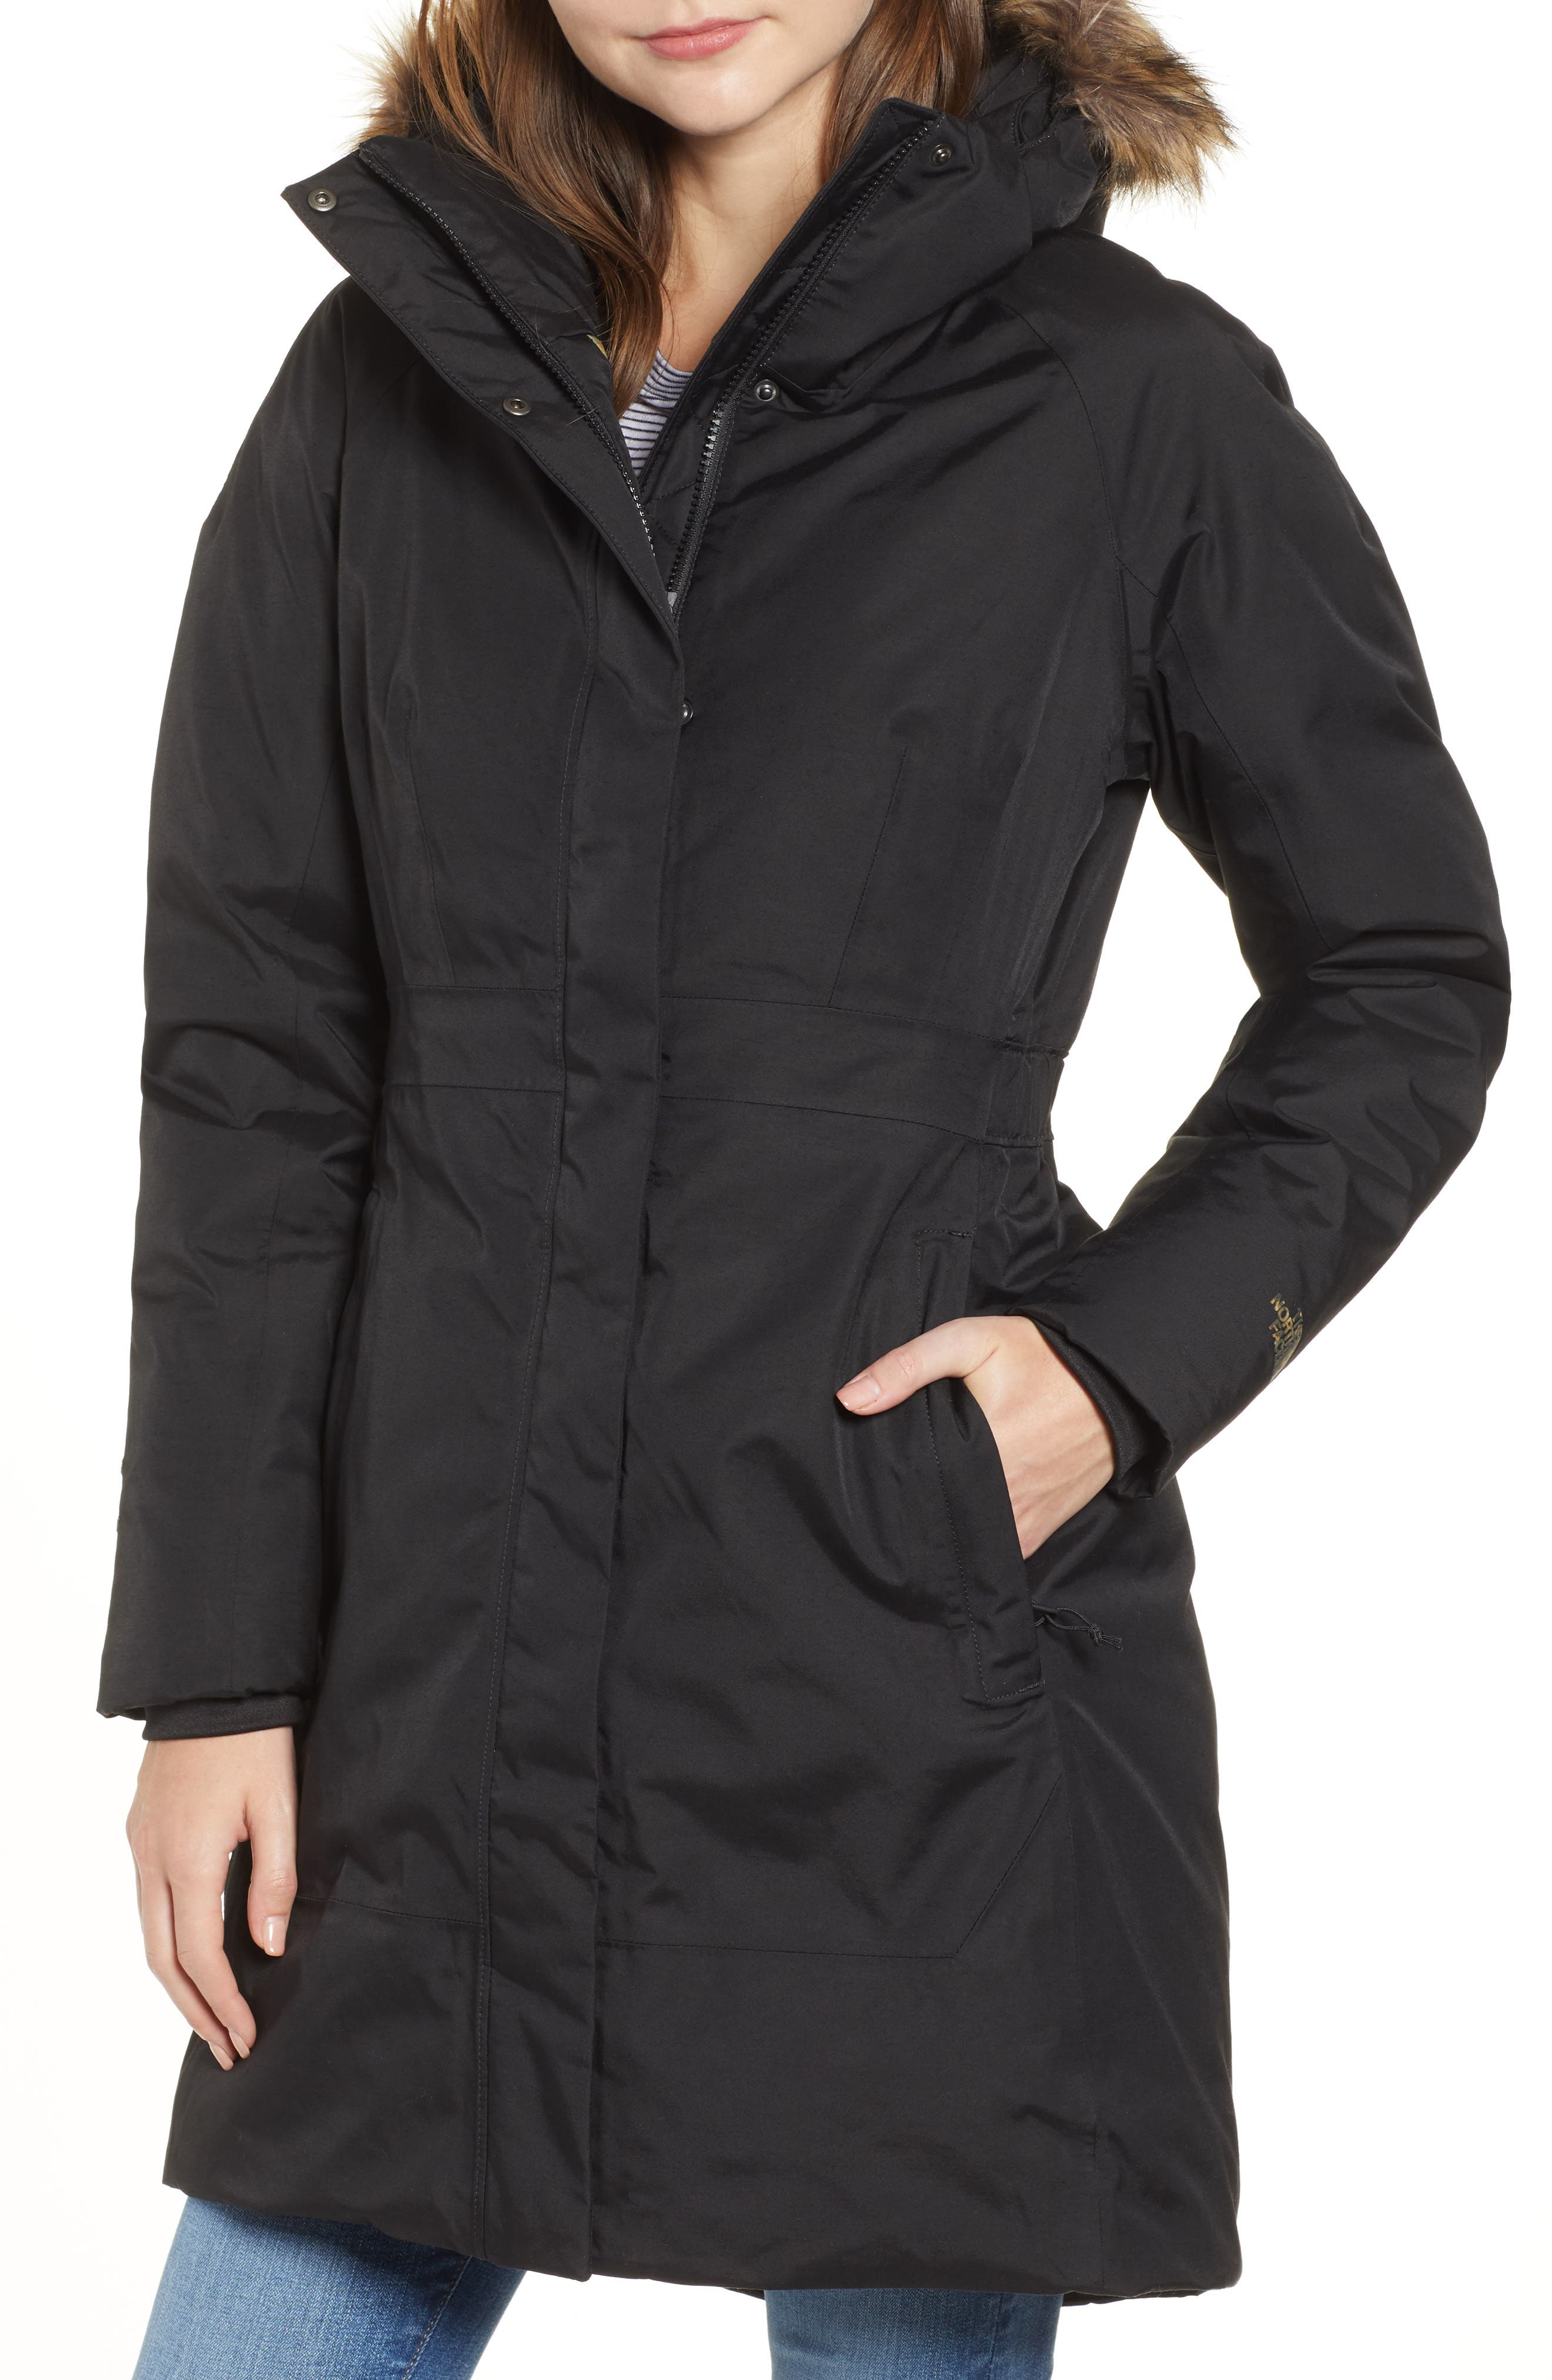 THE NORTH FACE,                             Arctic II Waterproof 550 Fill Power Down Parka with Faux Fur Trim,                             Alternate thumbnail 4, color,                             001